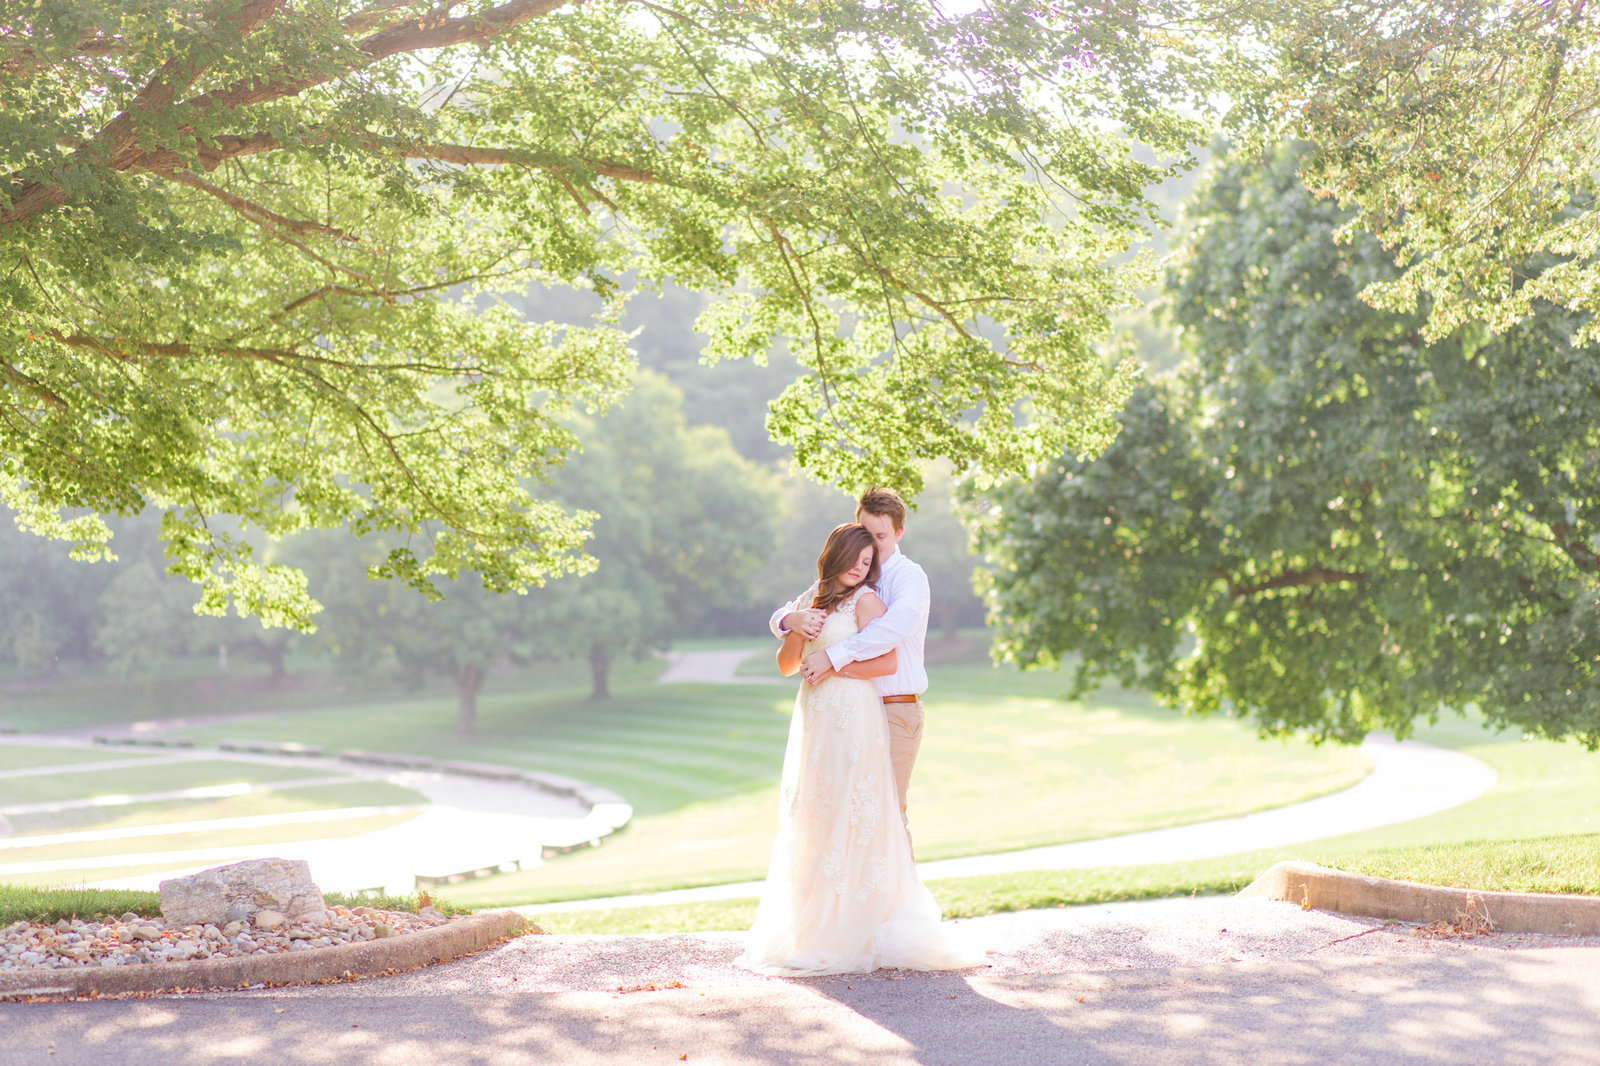 st-louis-spring-wedding-photographer-1